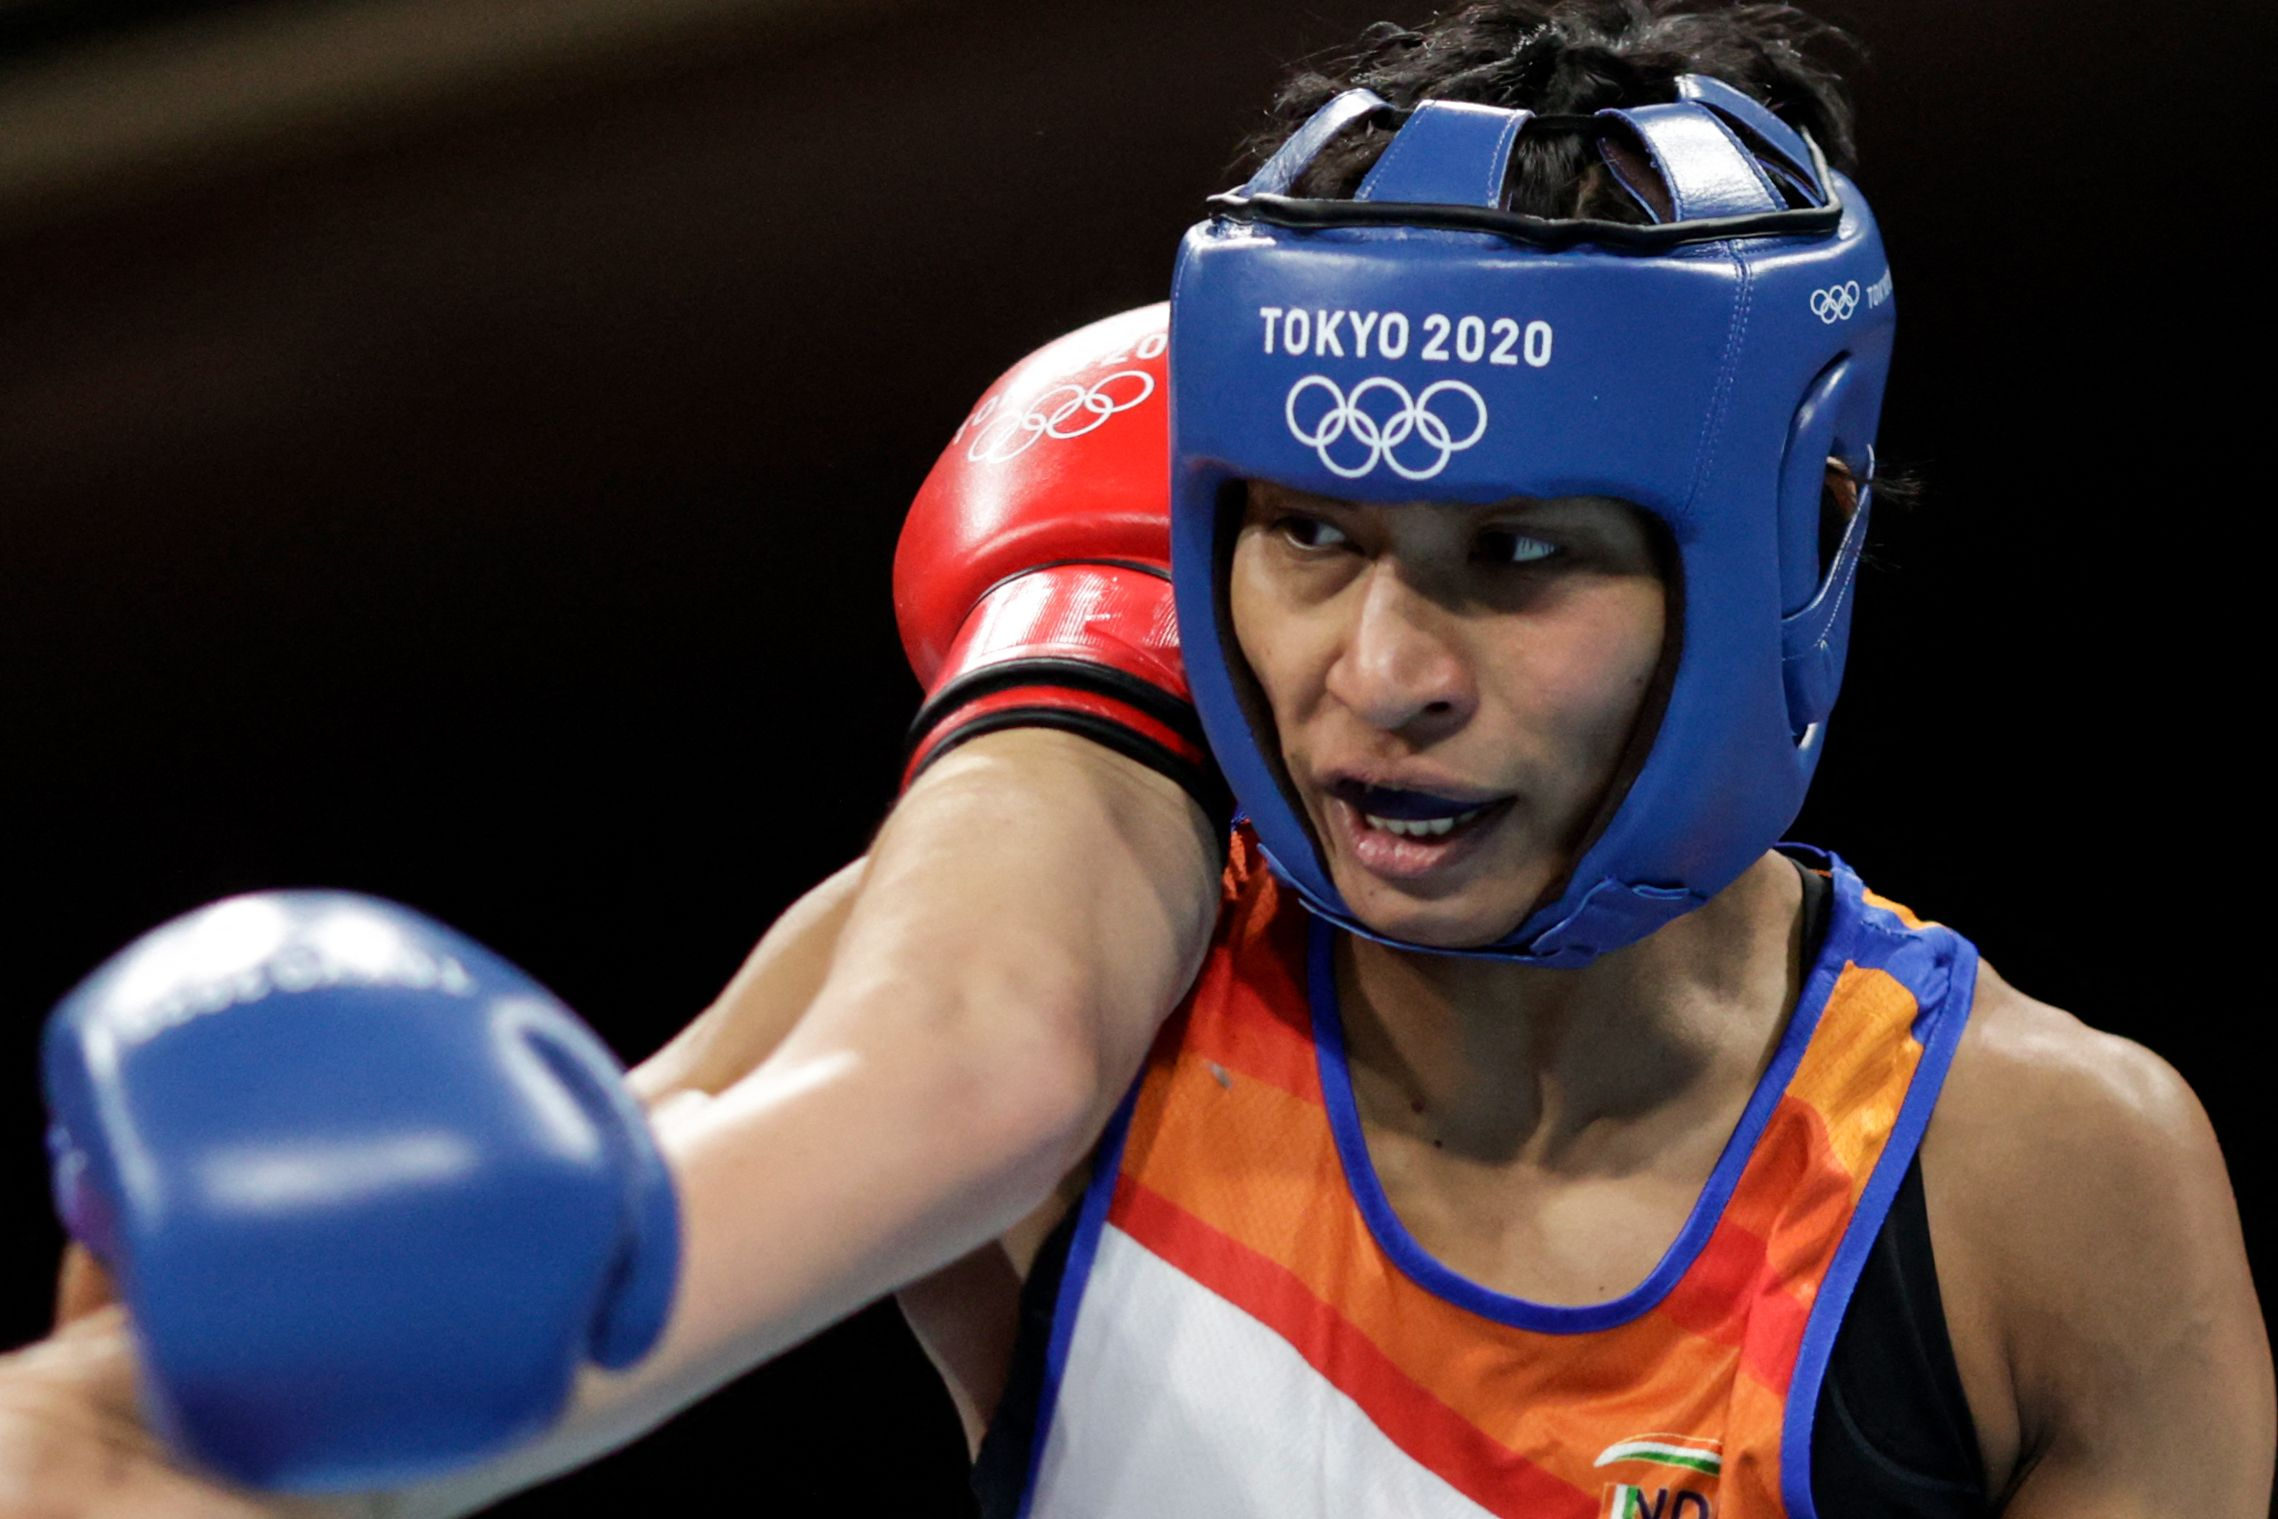 Lovlina Borgohain assures second medal of the #TokyoOlympics for India by winning her women's welterweight quarterfinal vs Chinese Taipei's Nien Chin Chen